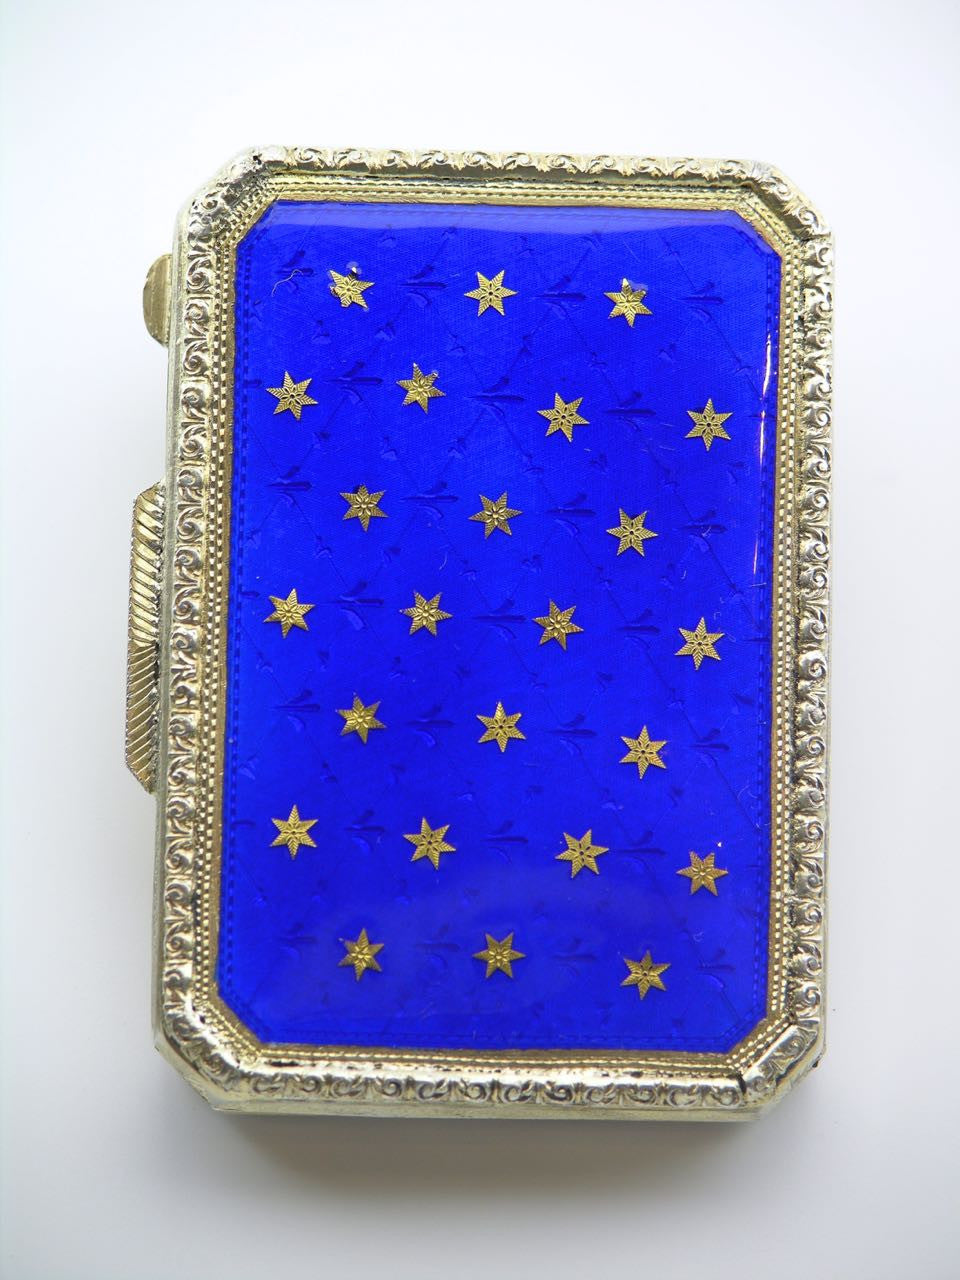 Italian silver gilt and enamel rectangular table box